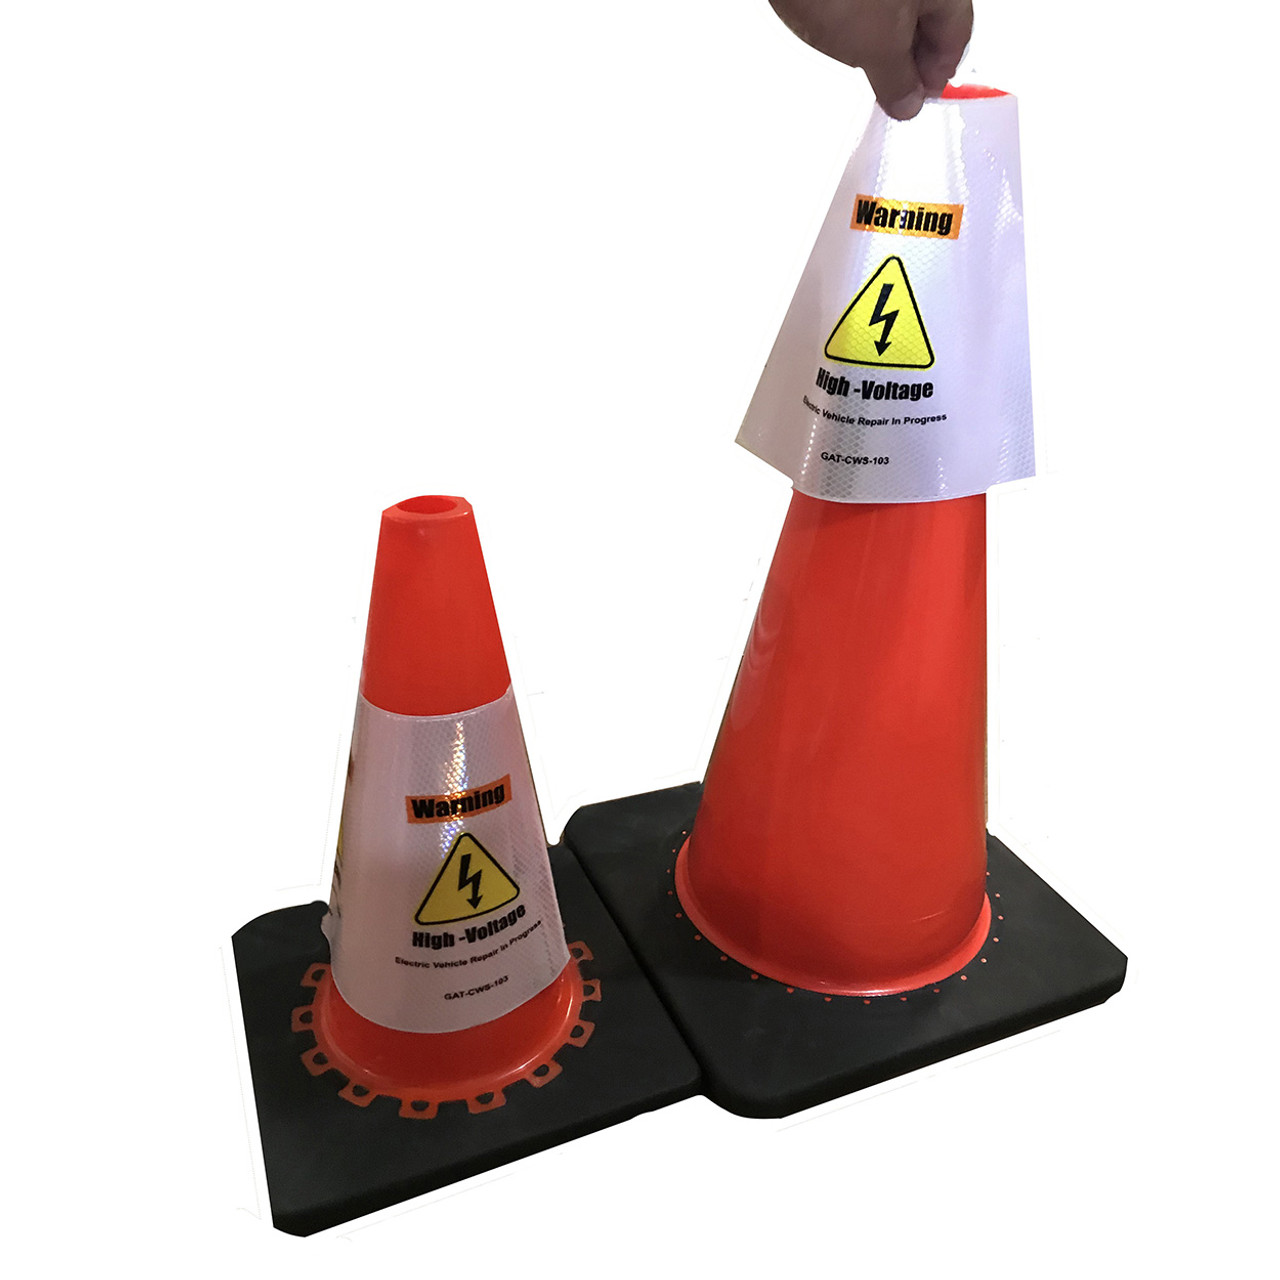 Electric Vehicle High Voltage Warning Sign - Cone Collar